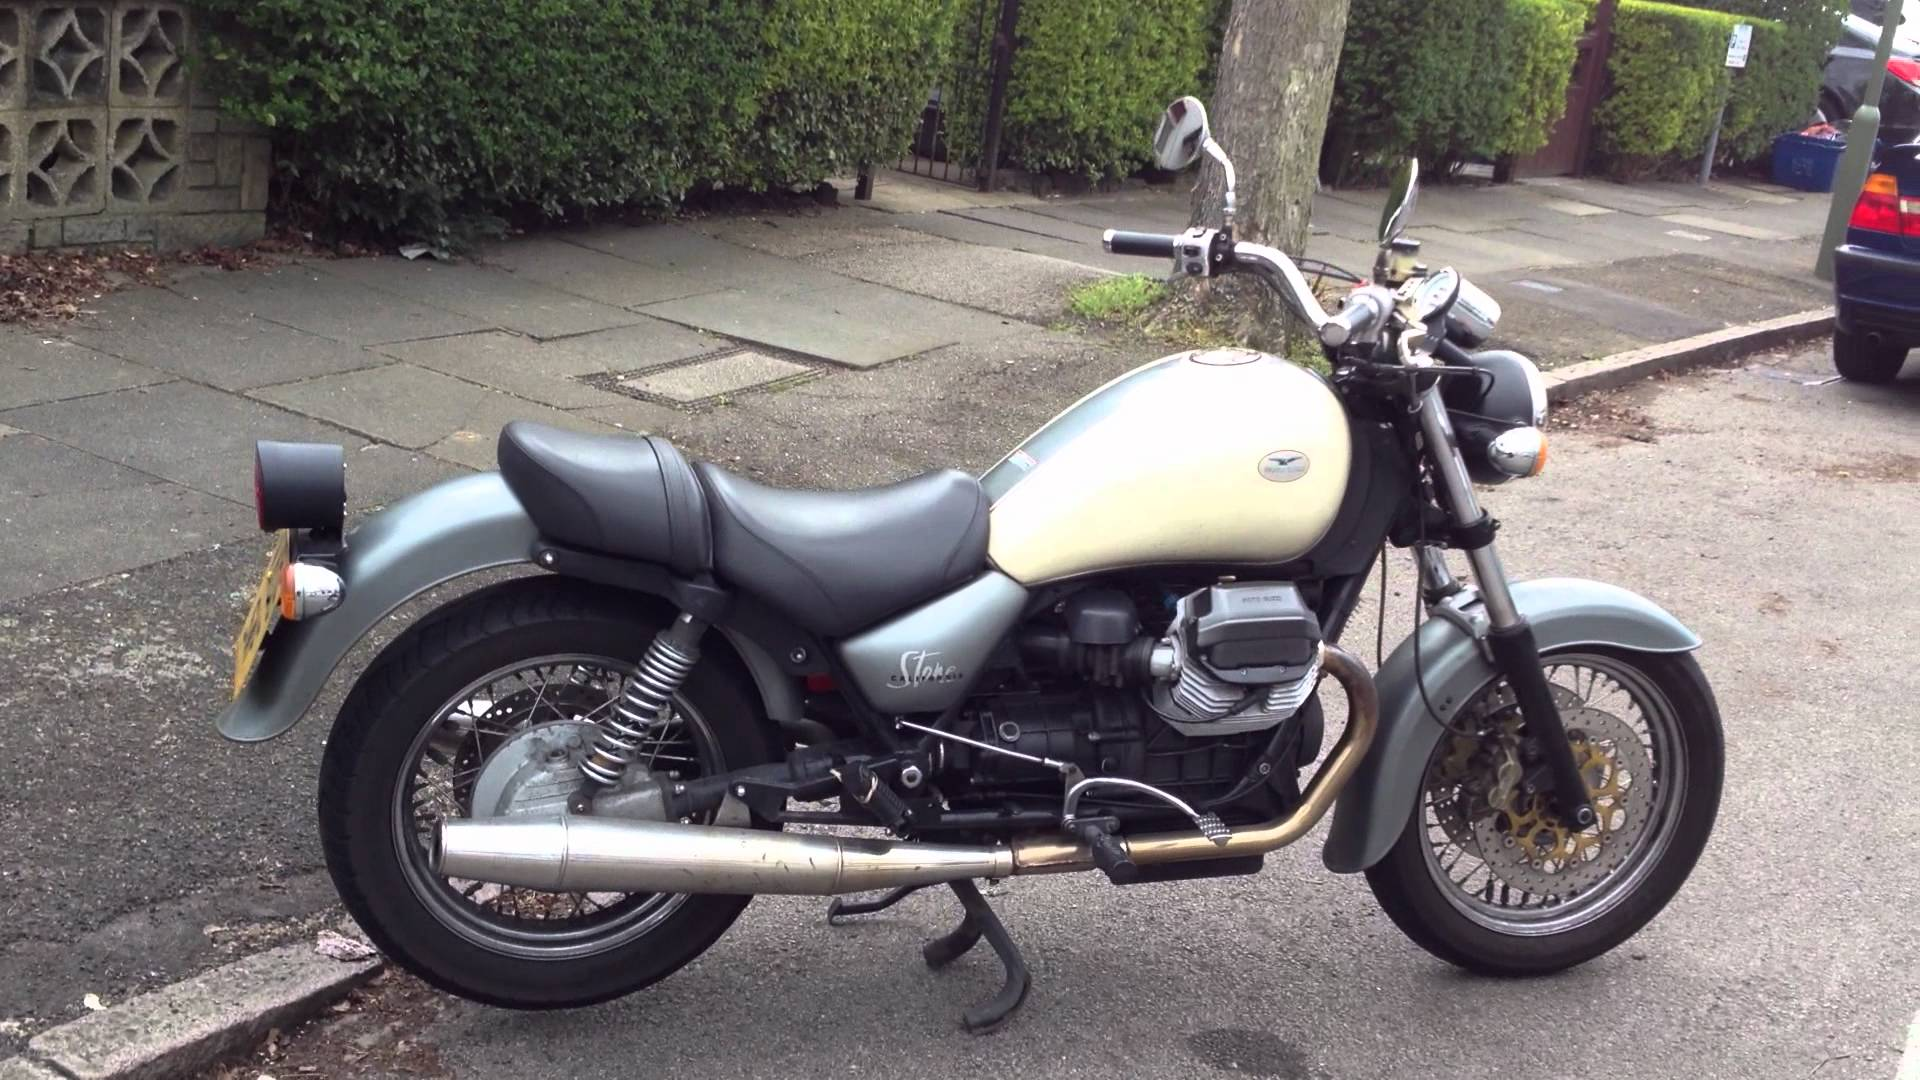 Moto Guzzi California Jackal 2001 images #109128